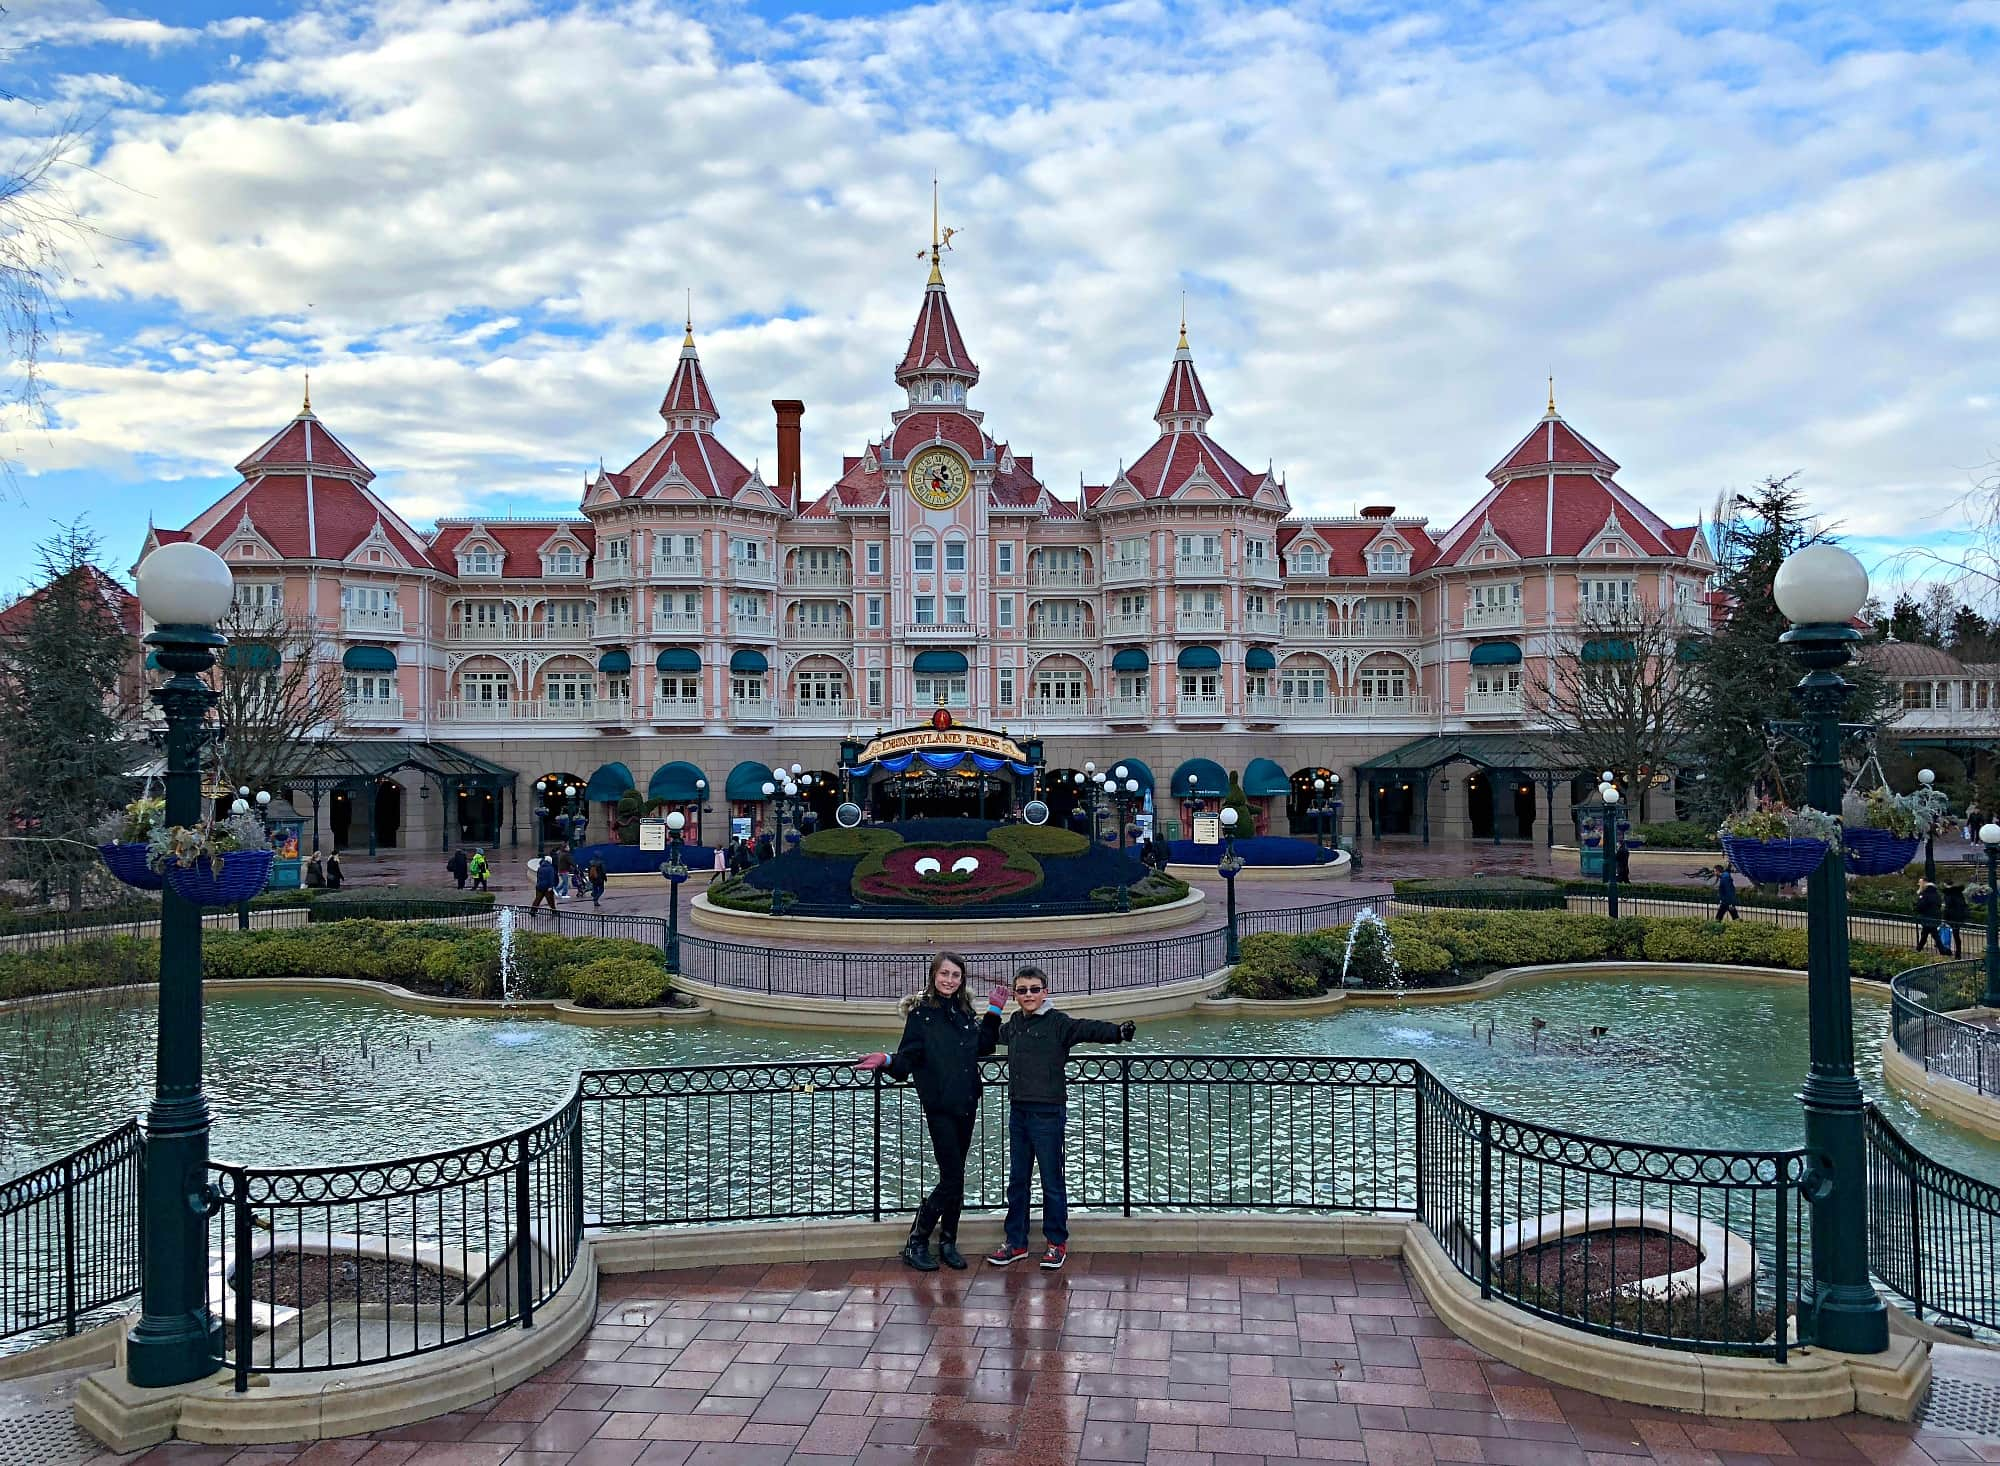 The Disneyland Hotel at Disneyland Paris wows fans with its proximity to, and views of the theme park